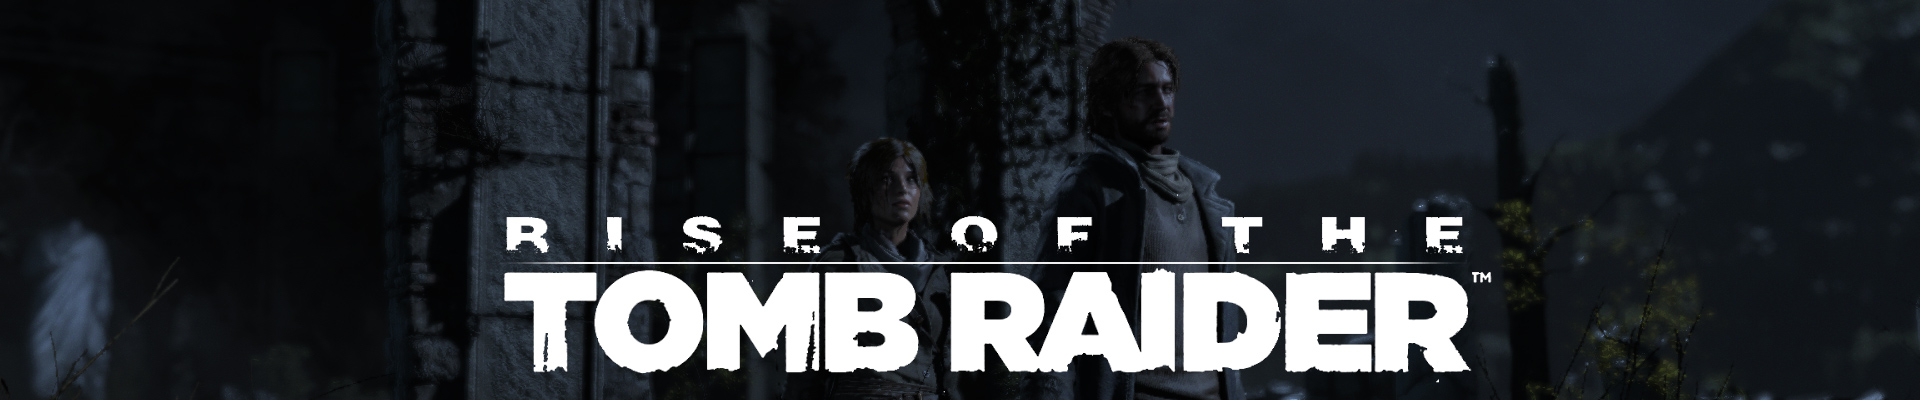 Thoughts on: Rise of the Tomb Raider